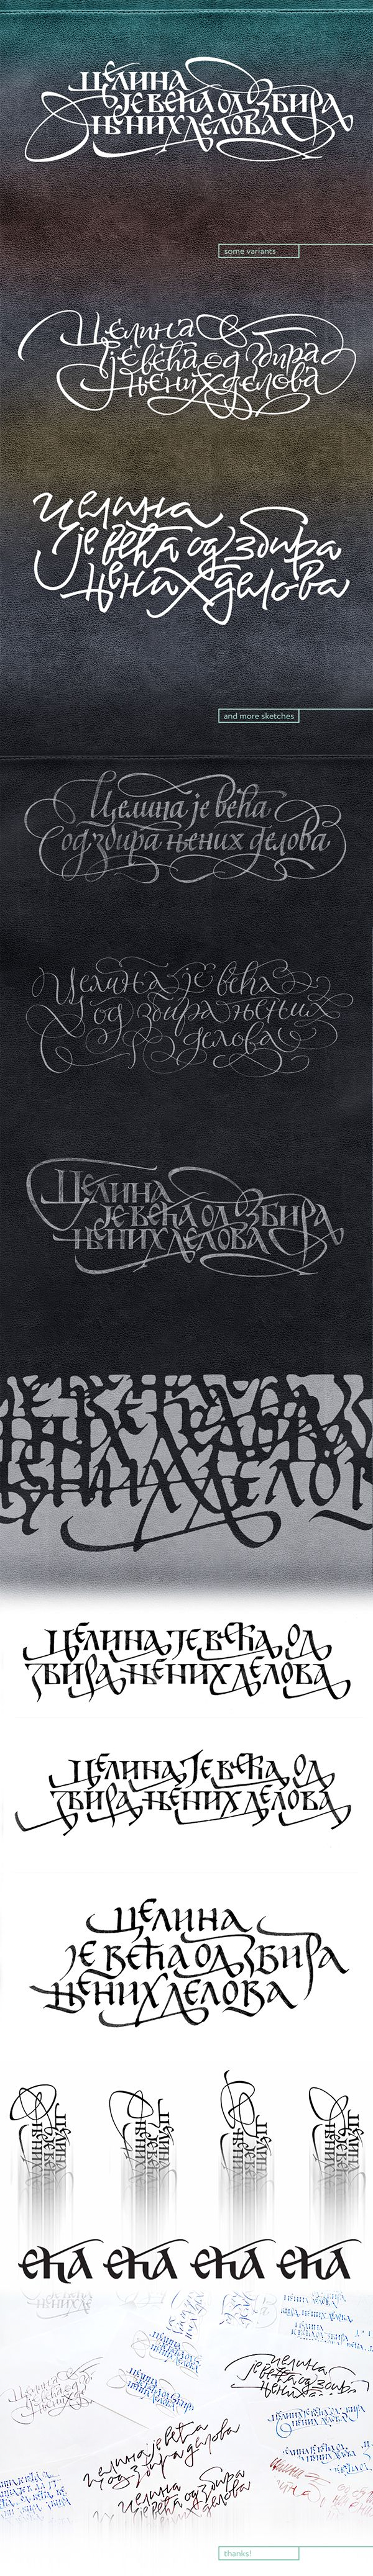 "Calligraphy and lettering for the tattoo. A quote from the ""Metaphysics"" by Aristotle.Целина је већа од збира њених делова. /Serbian/The whole is greater than the sum of its parts. /English/Целое больше, чем сумма частей. /Russian/"